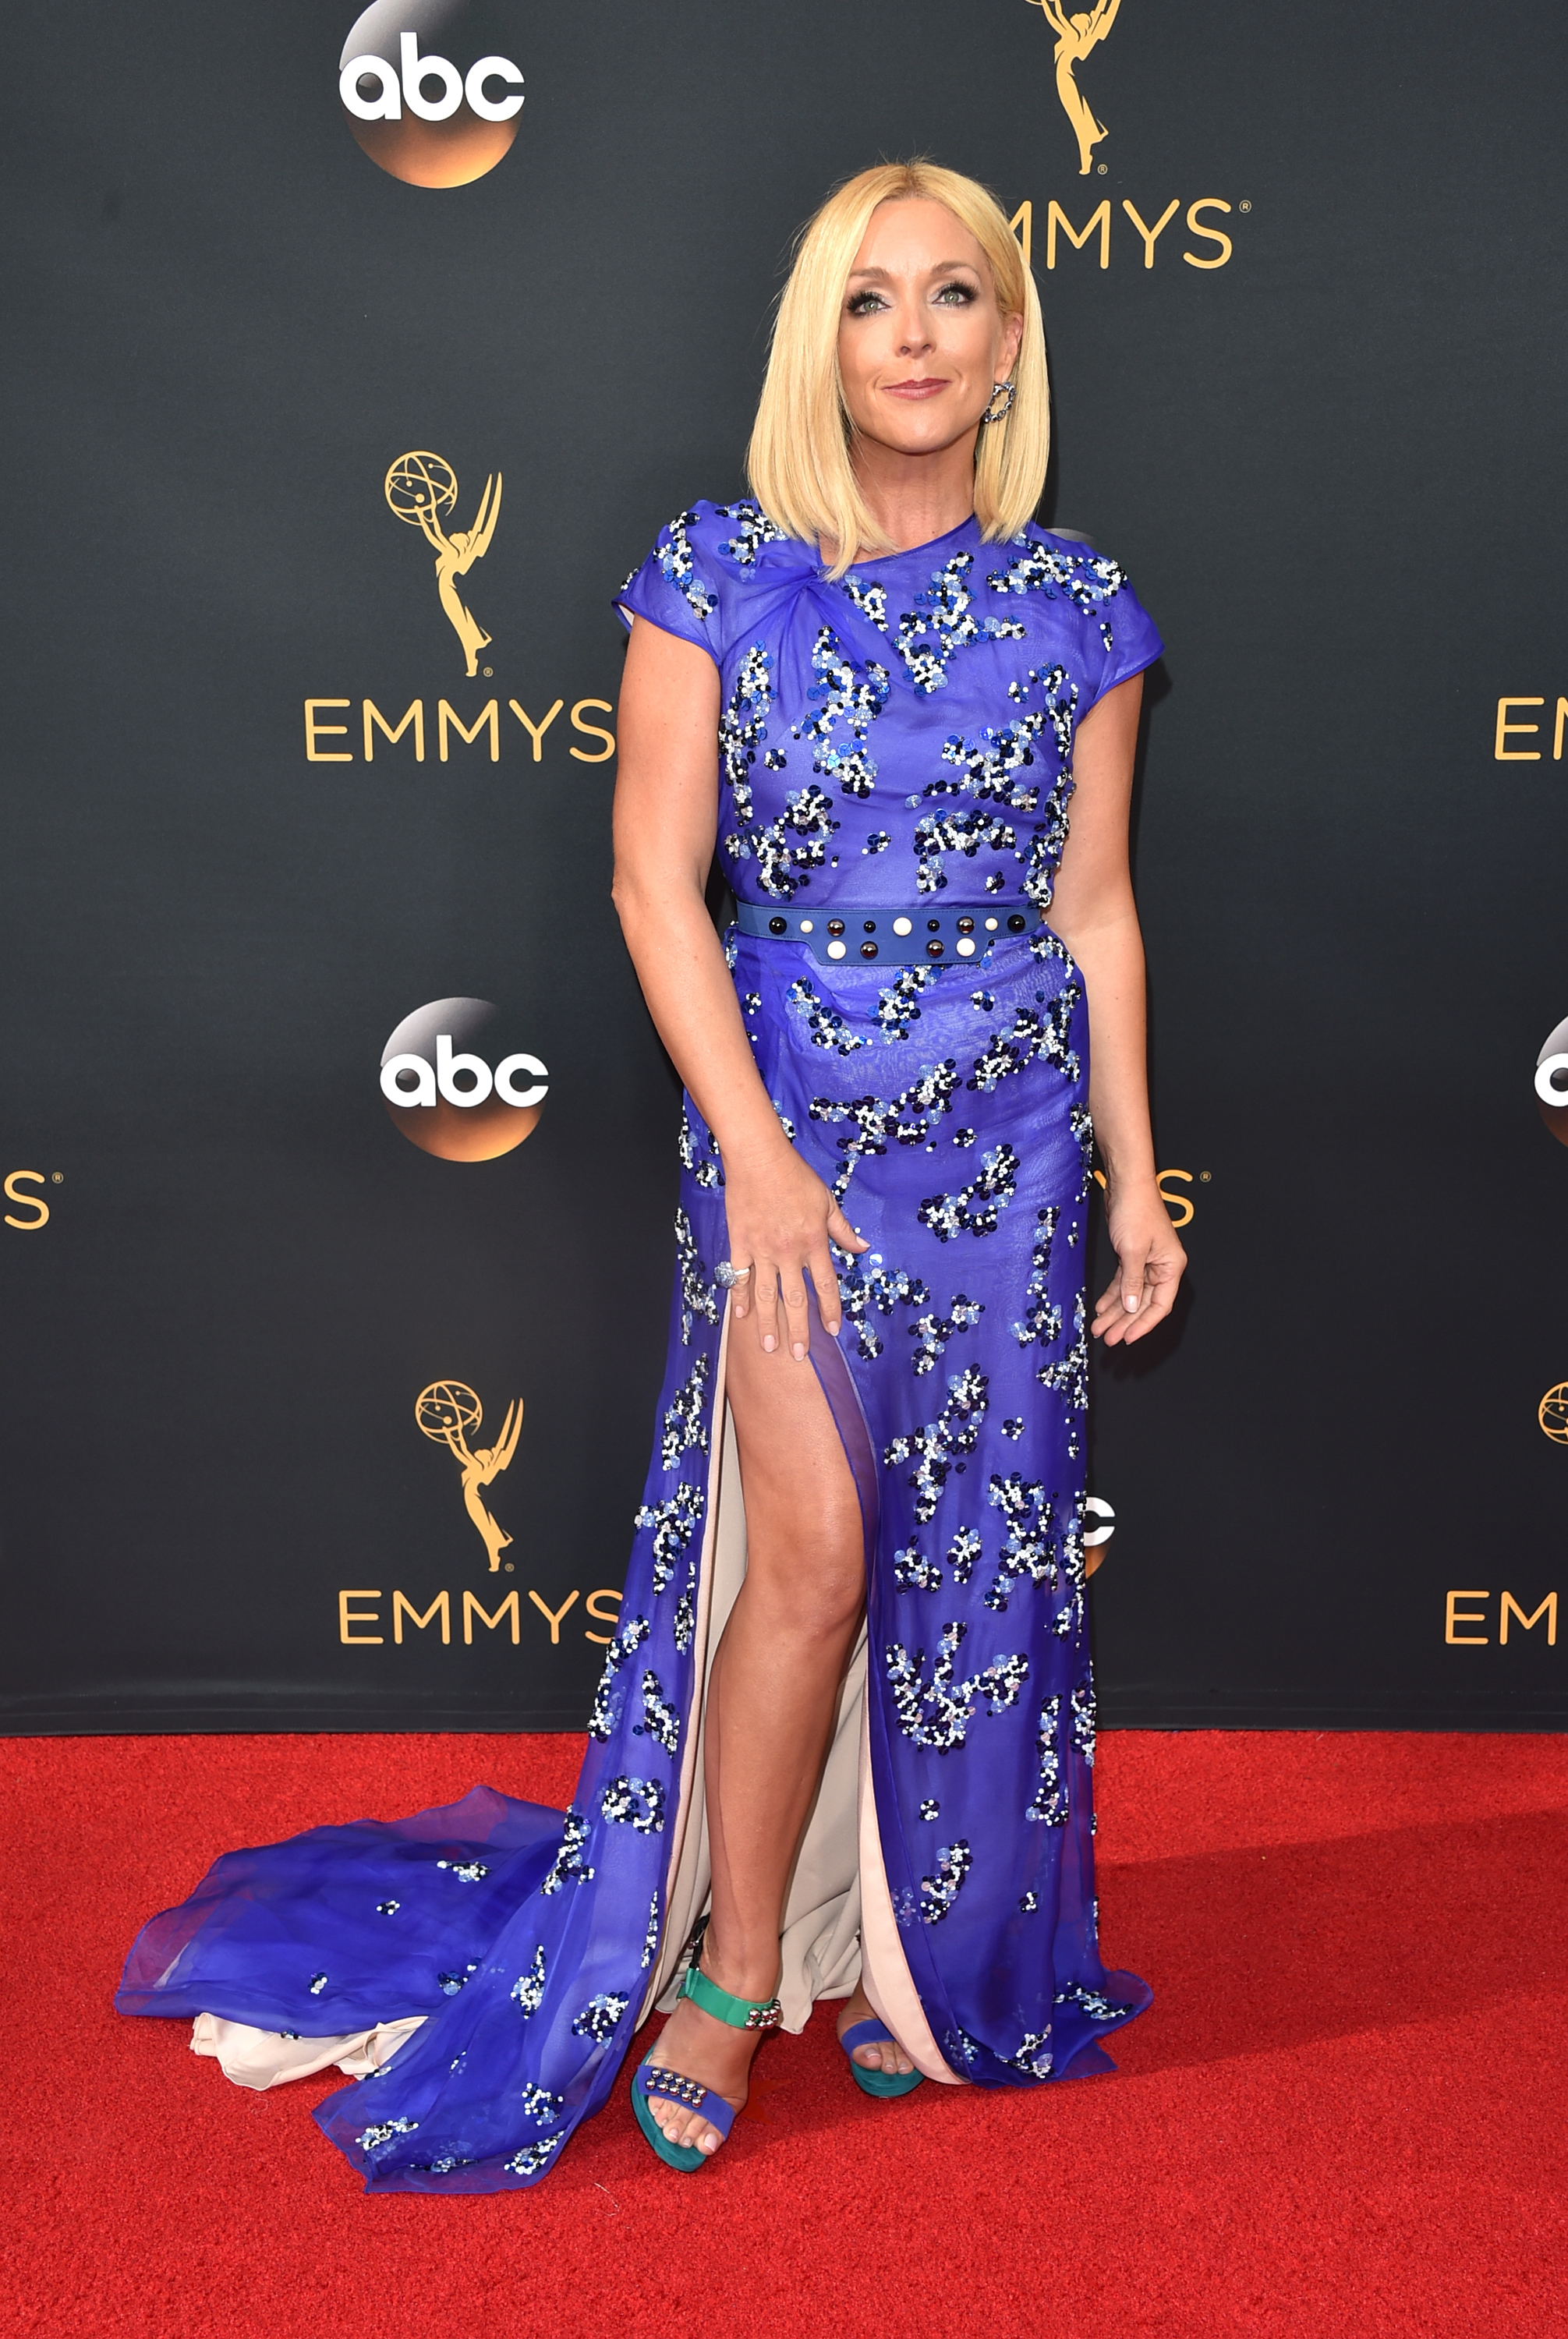 Jane Krakowski arrives at the 68th Annual Primetime Emmy Awards at Microsoft Theater on Sept. 18, 2016 in Los Angeles.